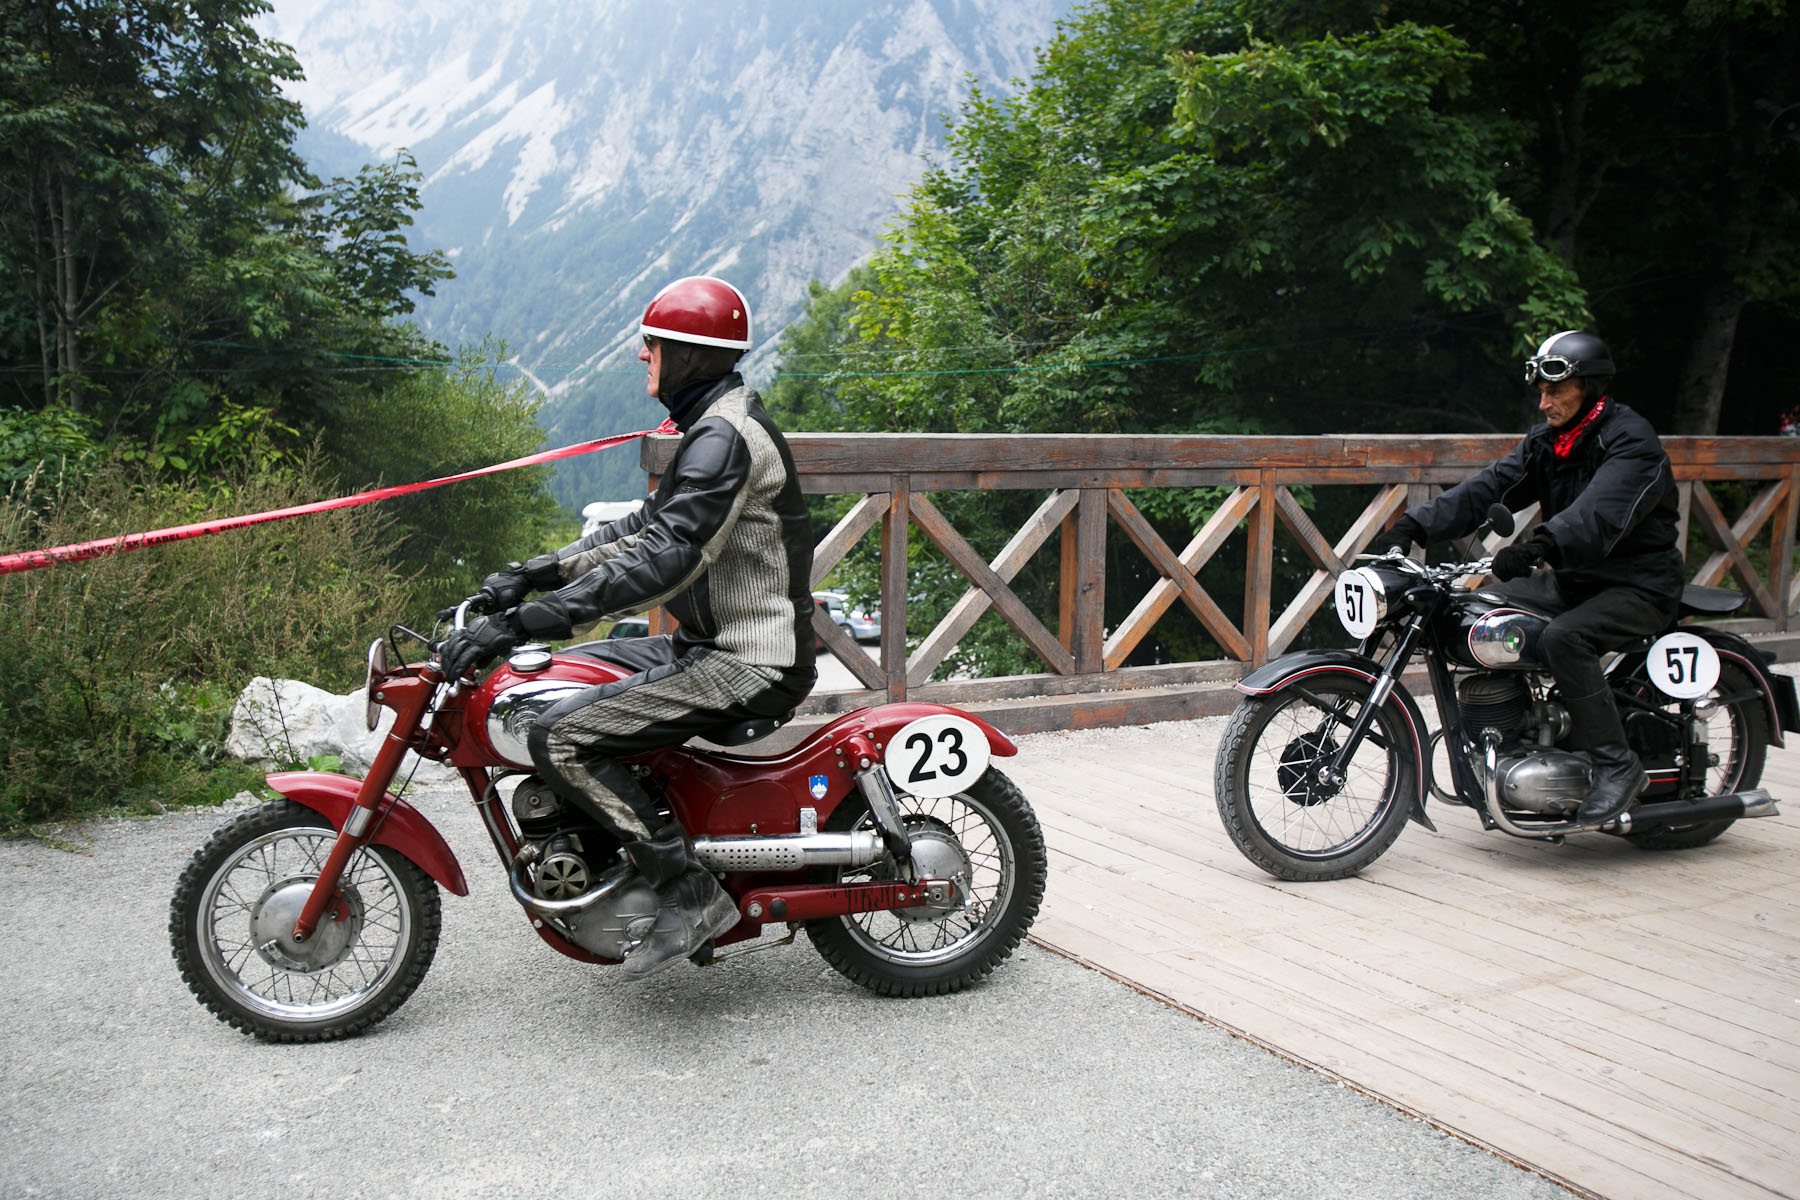 Janez Kopitar (SLO) on his 1958 Puch motorcycle and Viljem Krpic (SLO) on his 1953 Puch motorcycle head to the start line of the 19th Hrast Memorial, the international oldtimers\' mountain race in Ljubelj, Slovenia, Sep. 13, 2015.